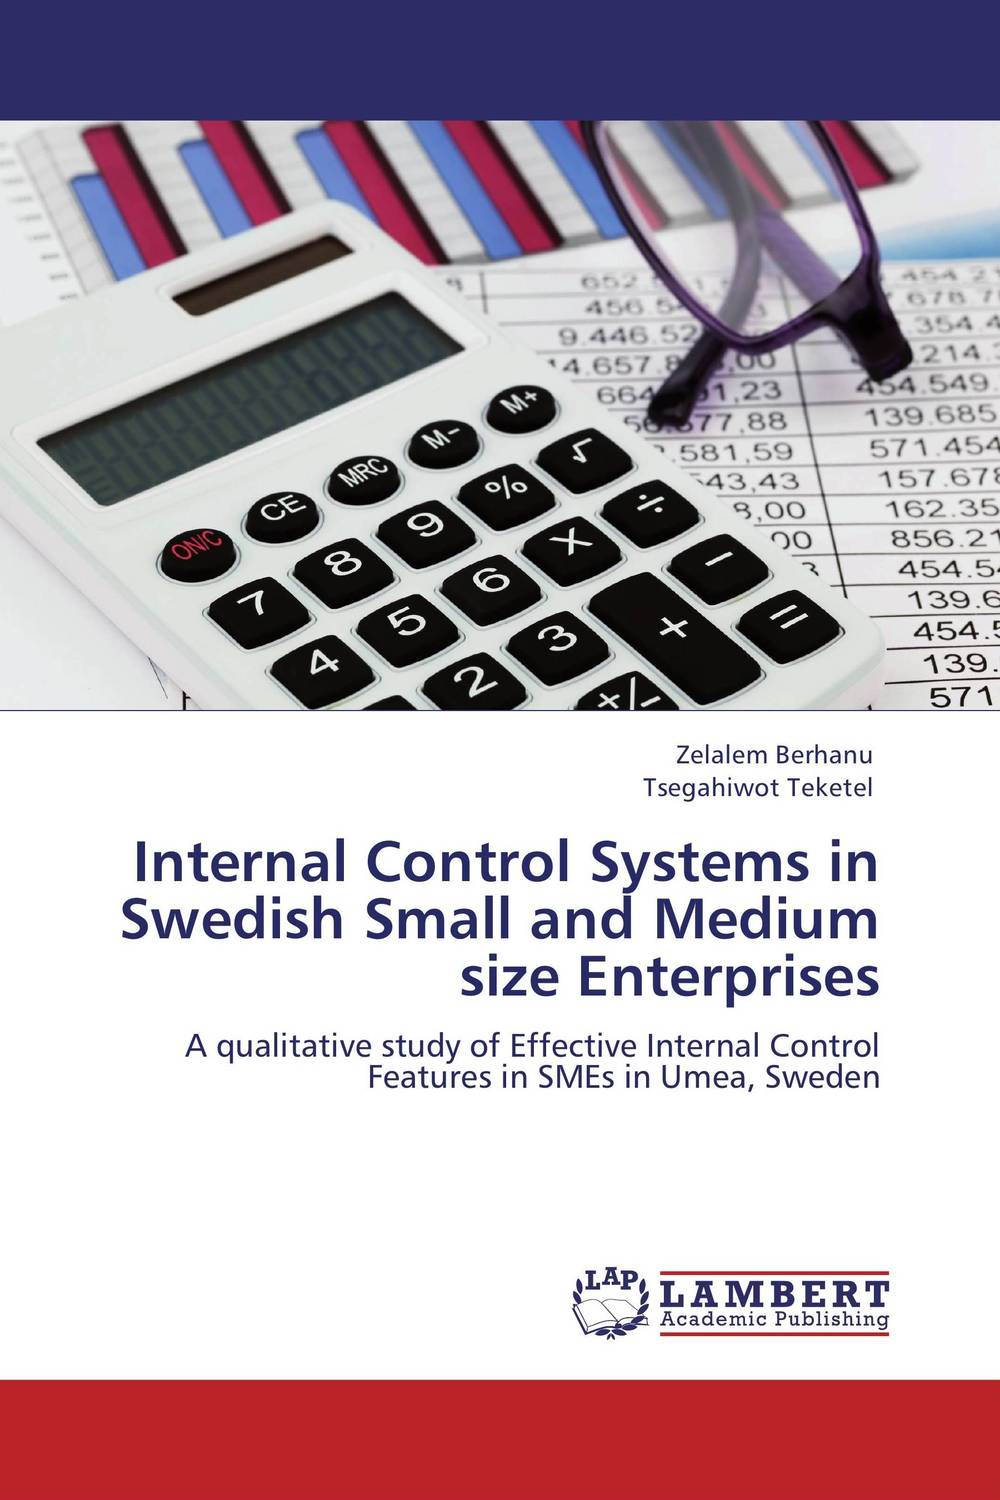 Internal Control Systems in Swedish Small and Medium size Enterprises evaluation of the internal control practices